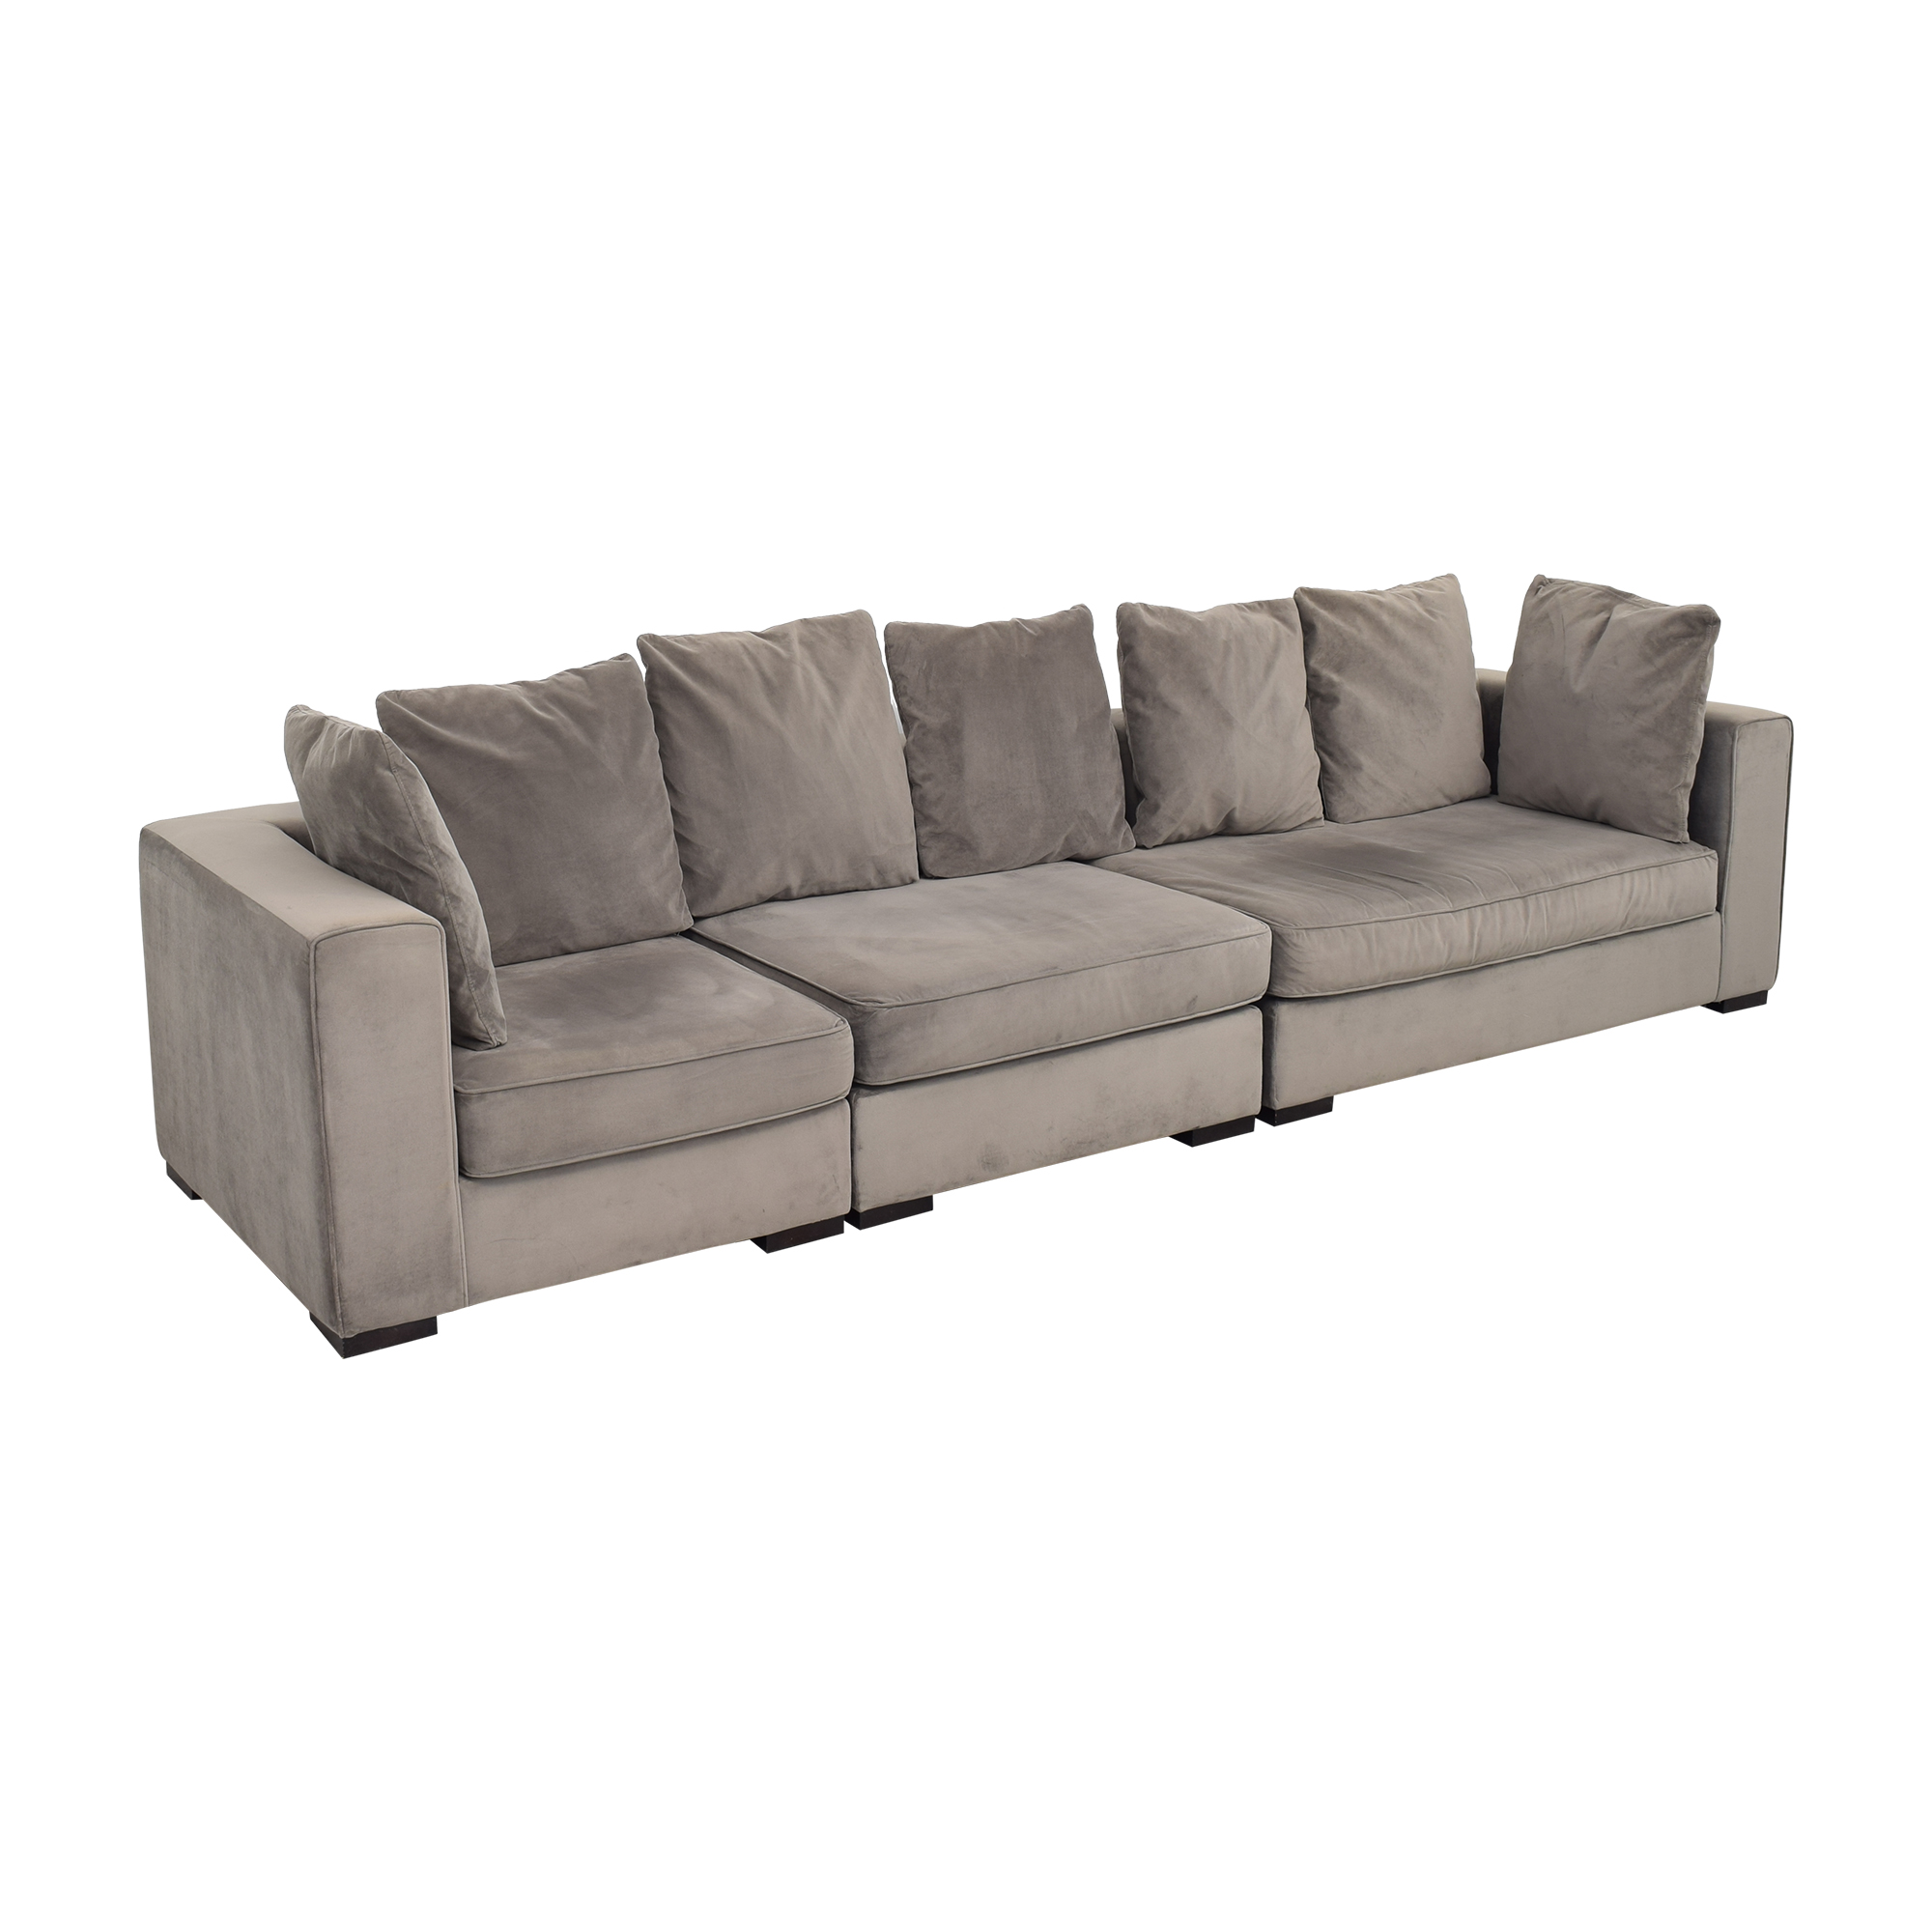 West Elm West Elm 3-Piece Sectional with Ottoman ma